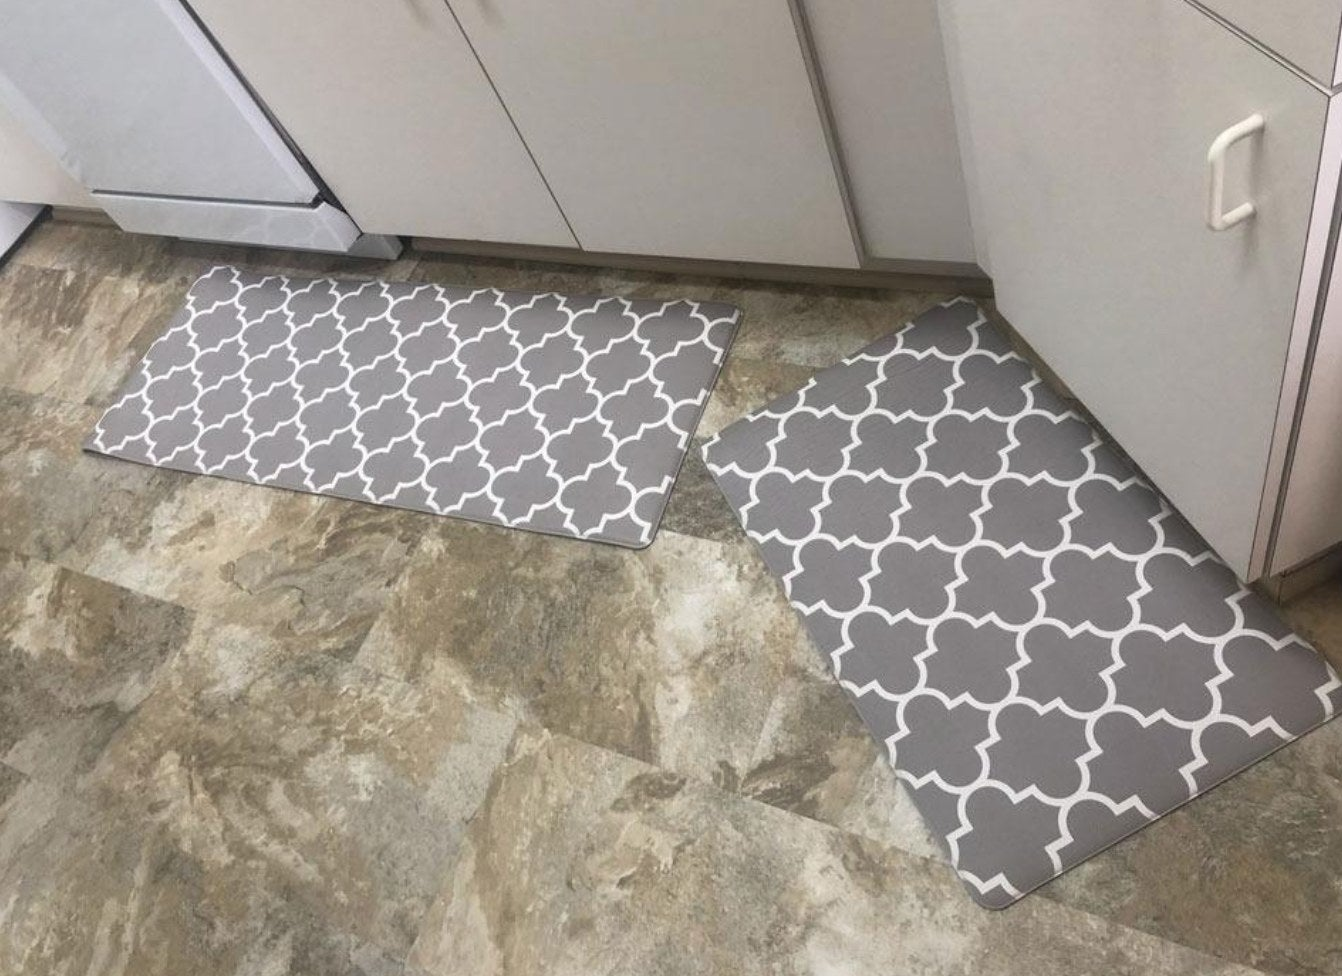 The reviewer's photo of the kitchen rug